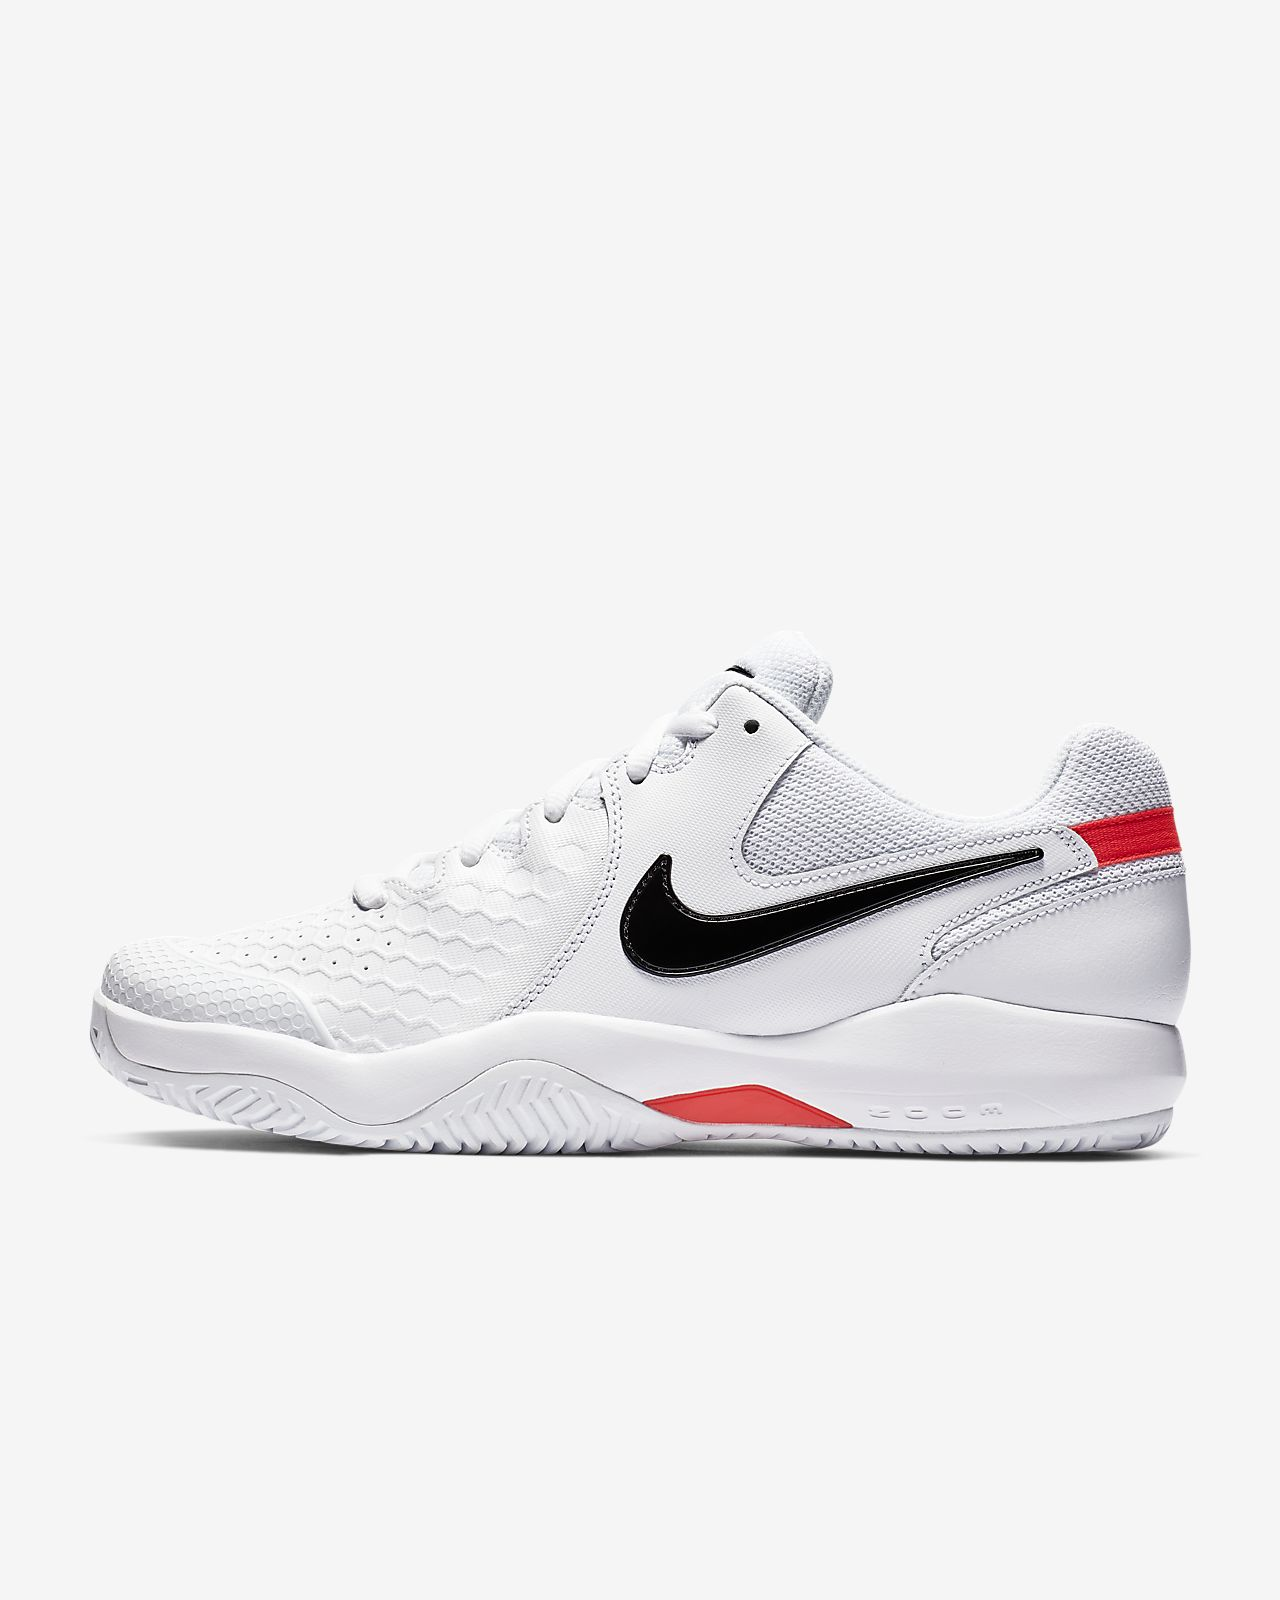 f9cadb409051 NikeCourt Air Zoom Resistance Men s Hard Court Tennis Shoe. Nike.com